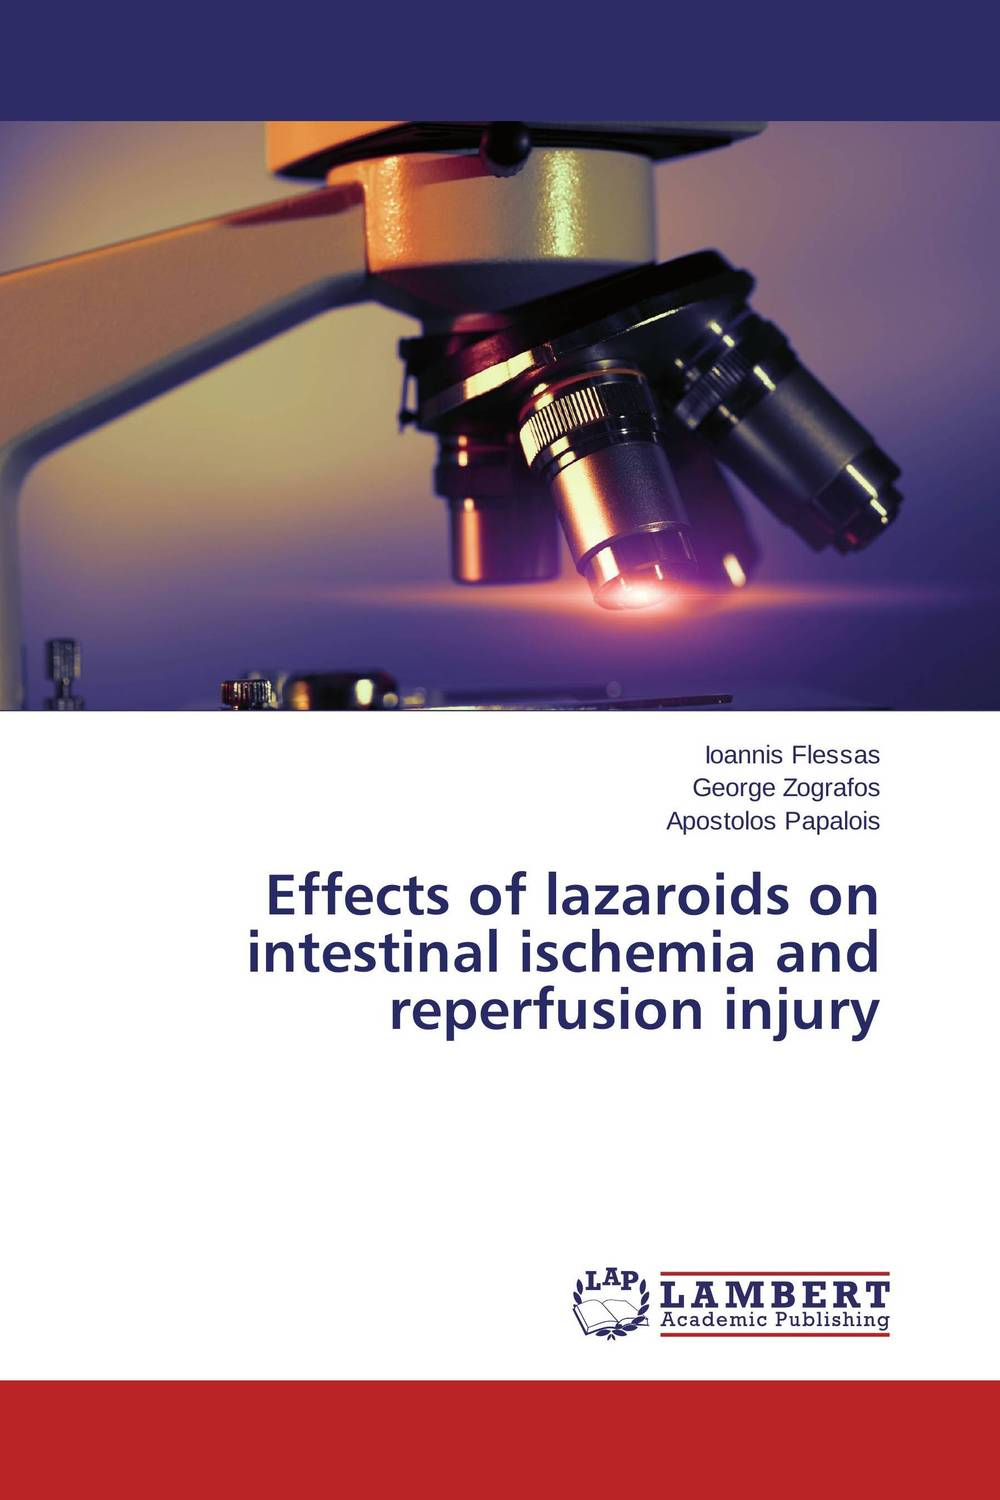 Effects of lazaroids on intestinal ischemia and reperfusion injury adenosine's role in controlling cmro2 following hypoxia ischemia